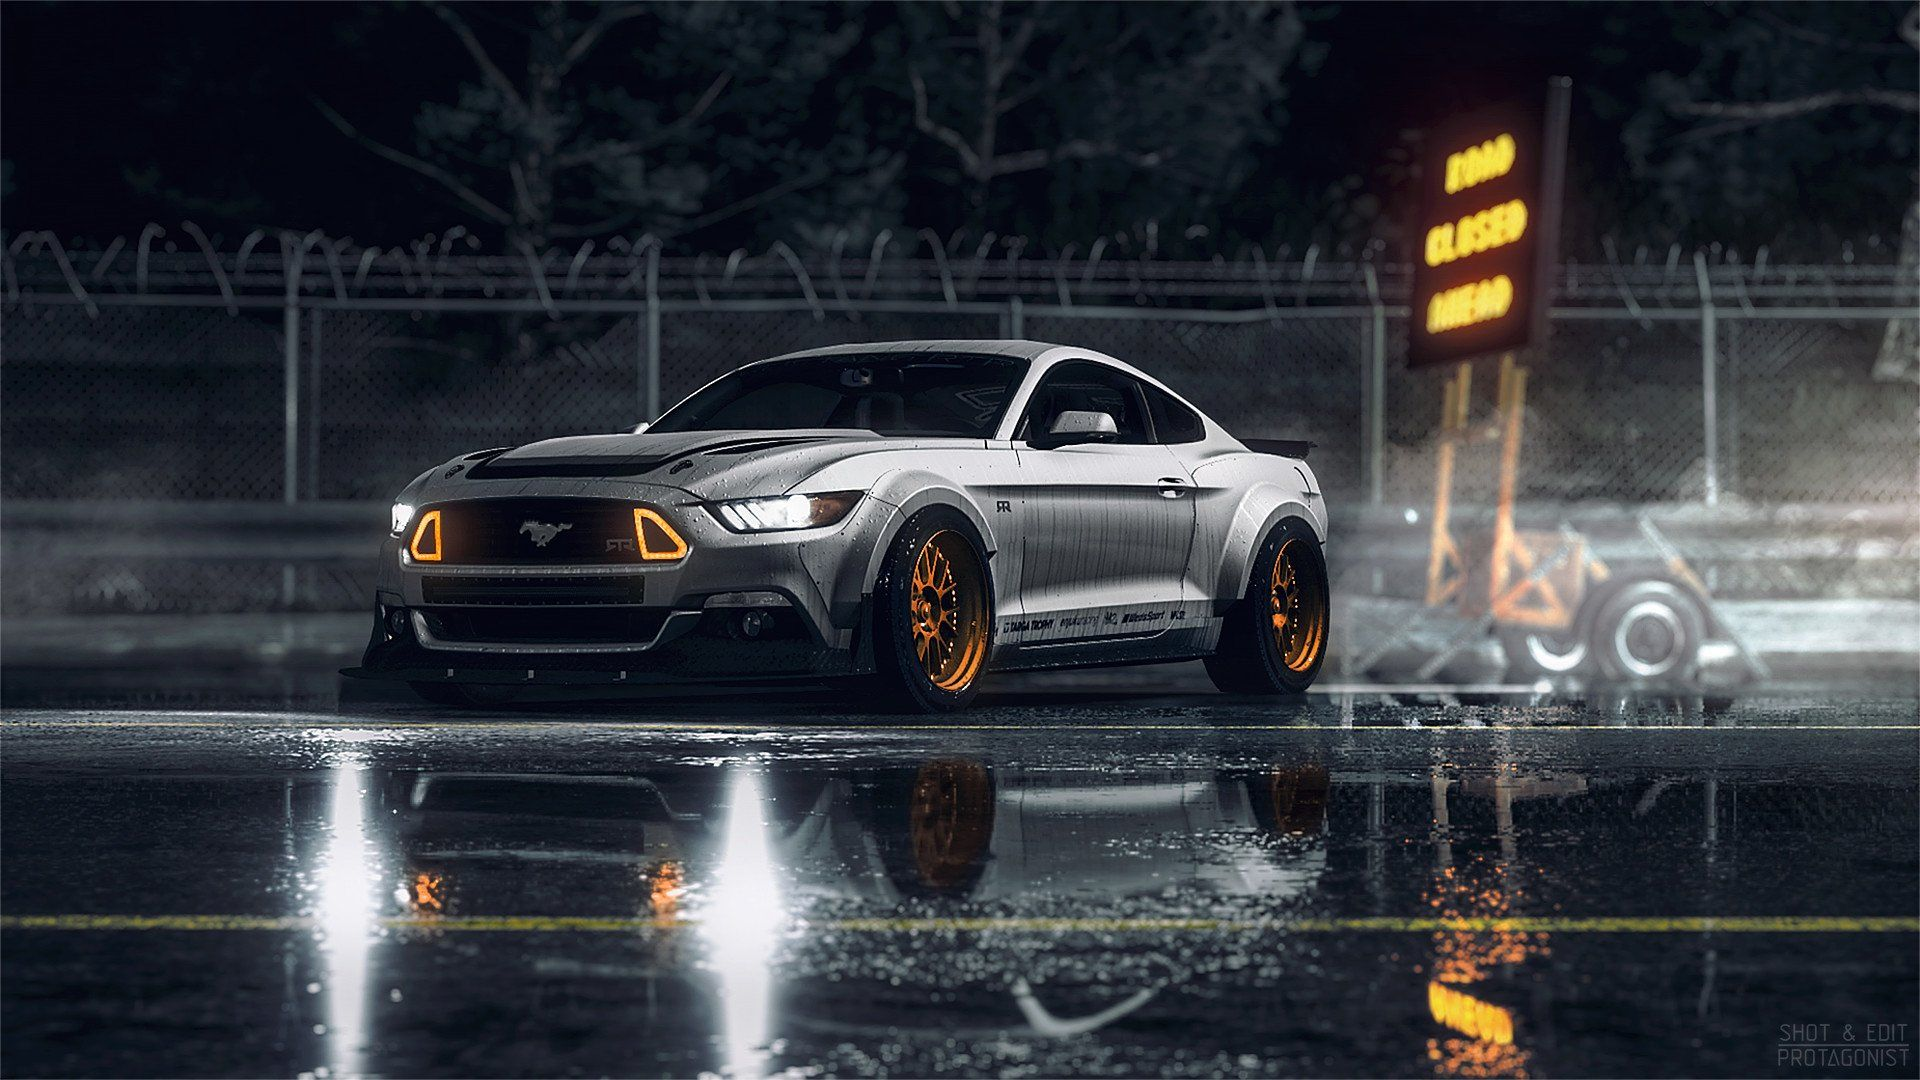 Ford Mustang Hd Wallpapers Backgrounds Wallpaper Ford Mustang Coches Y Motocicletas Coches Deportivos